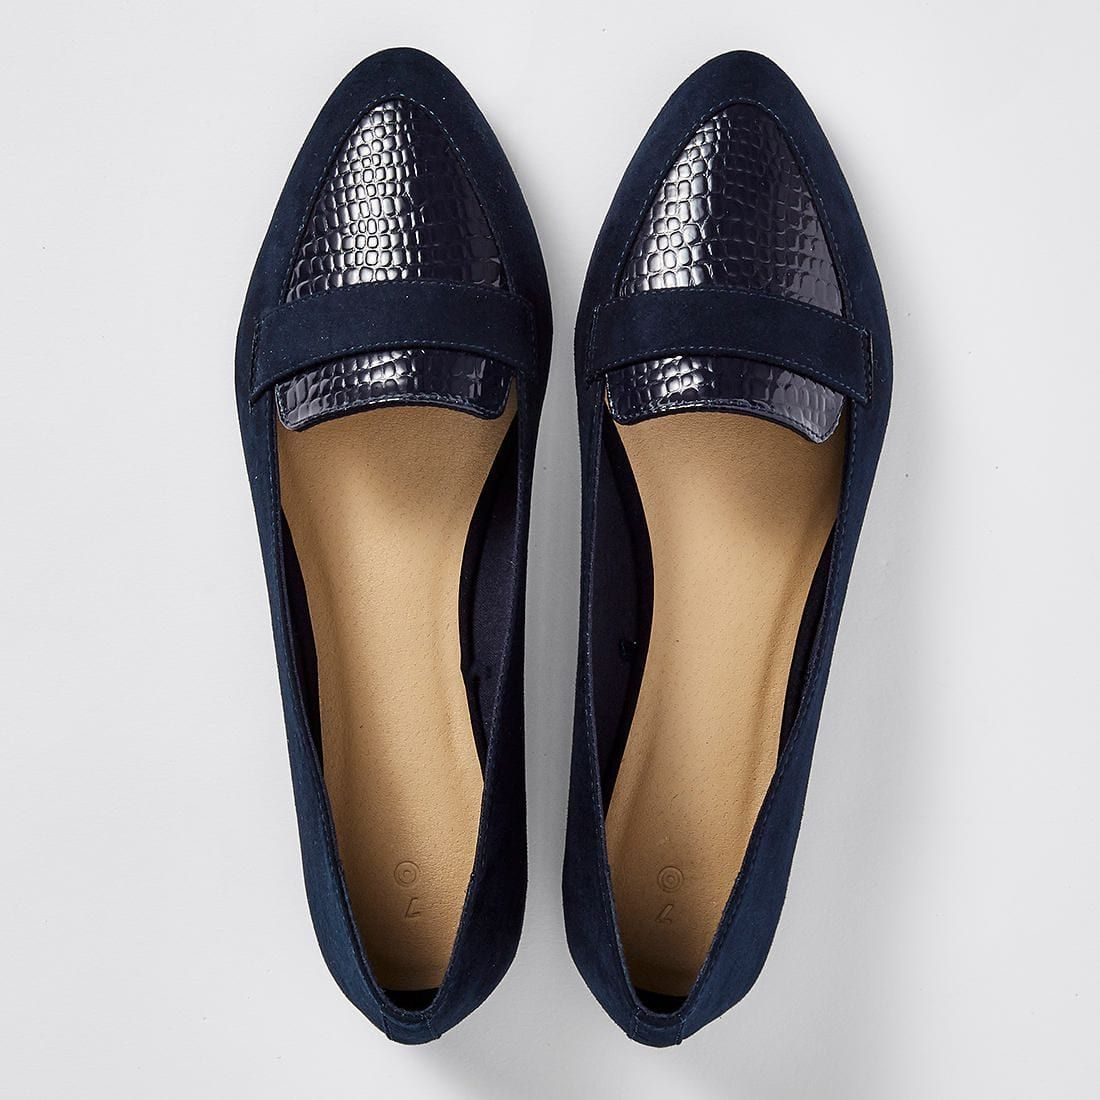 Felly Pointed Ballet Flats - Black